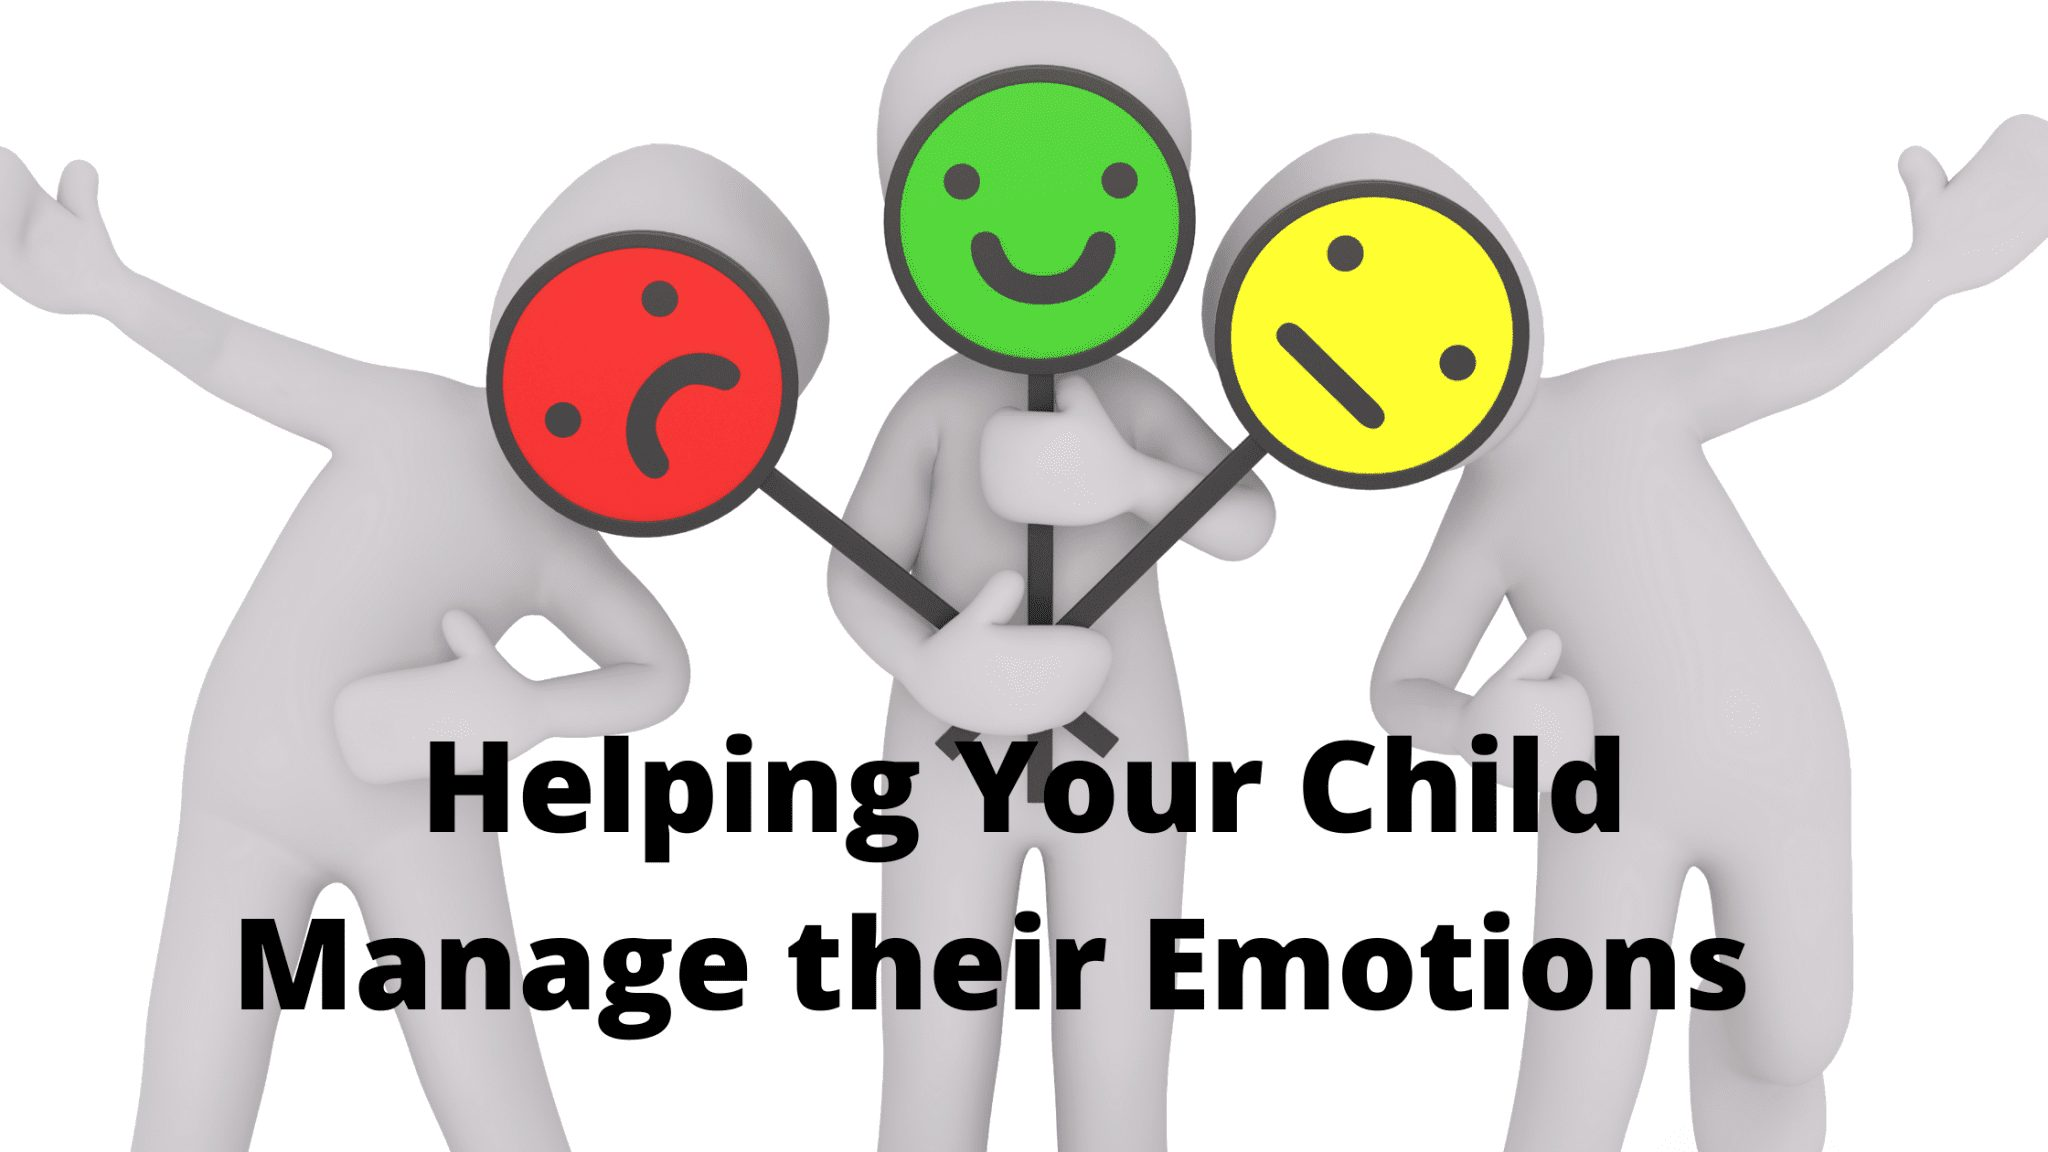 Helping Your Child Manage their Emotions